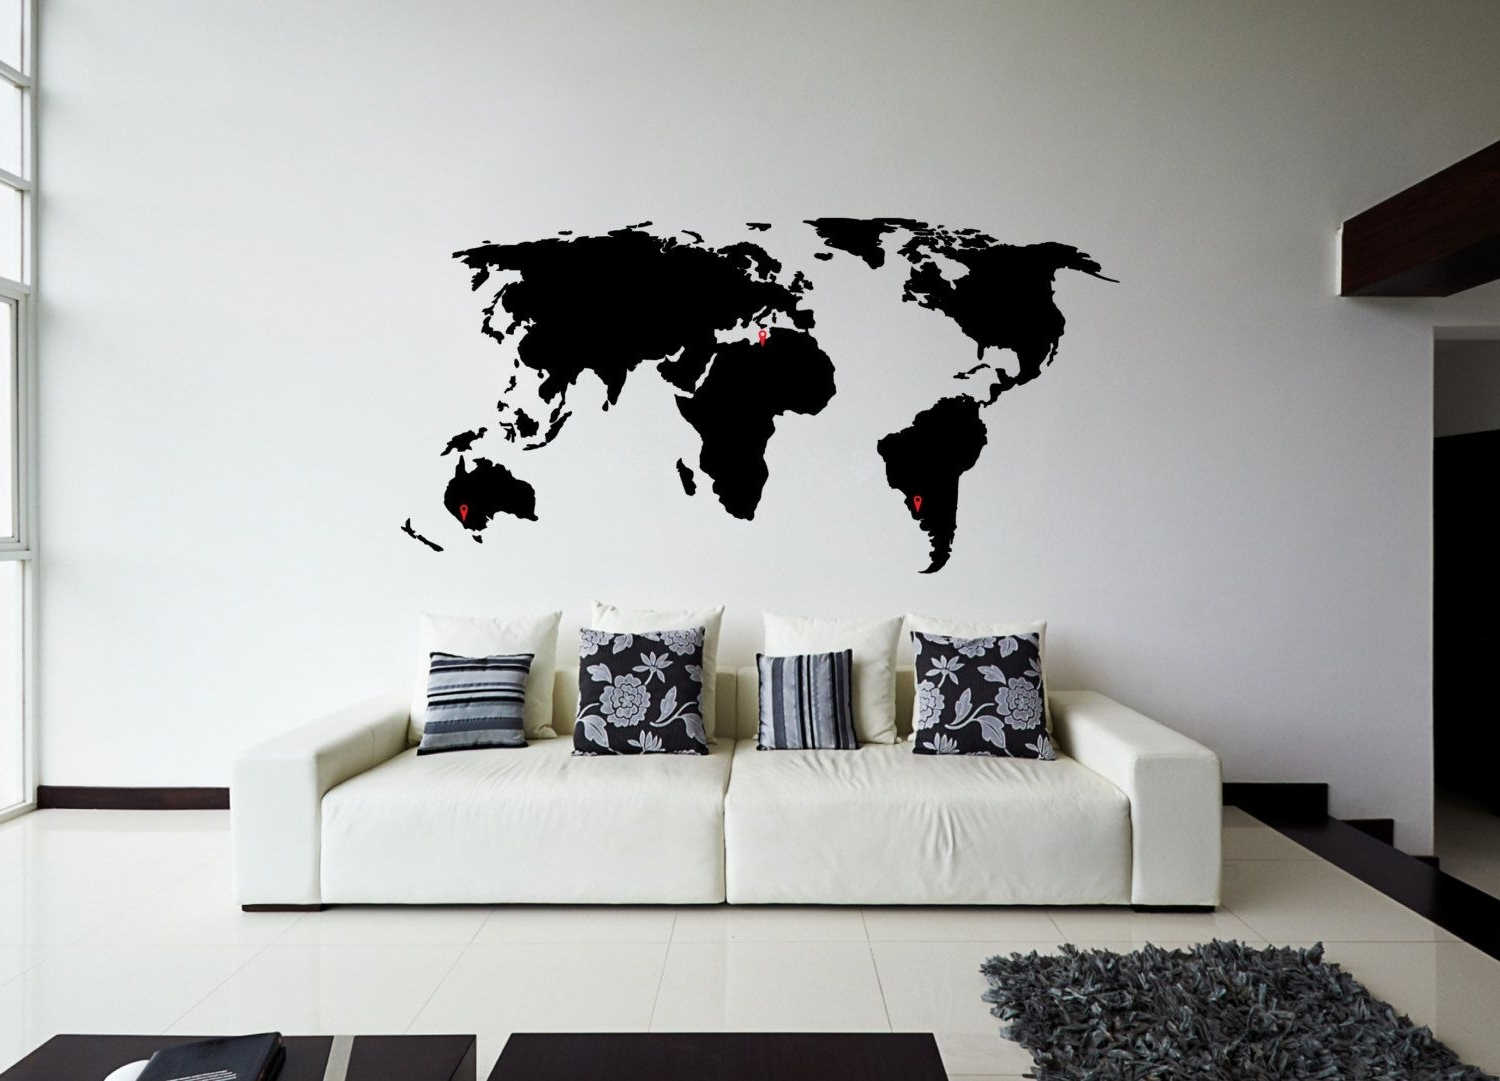 World Map Wall Sticker Design (View 14 of 15)